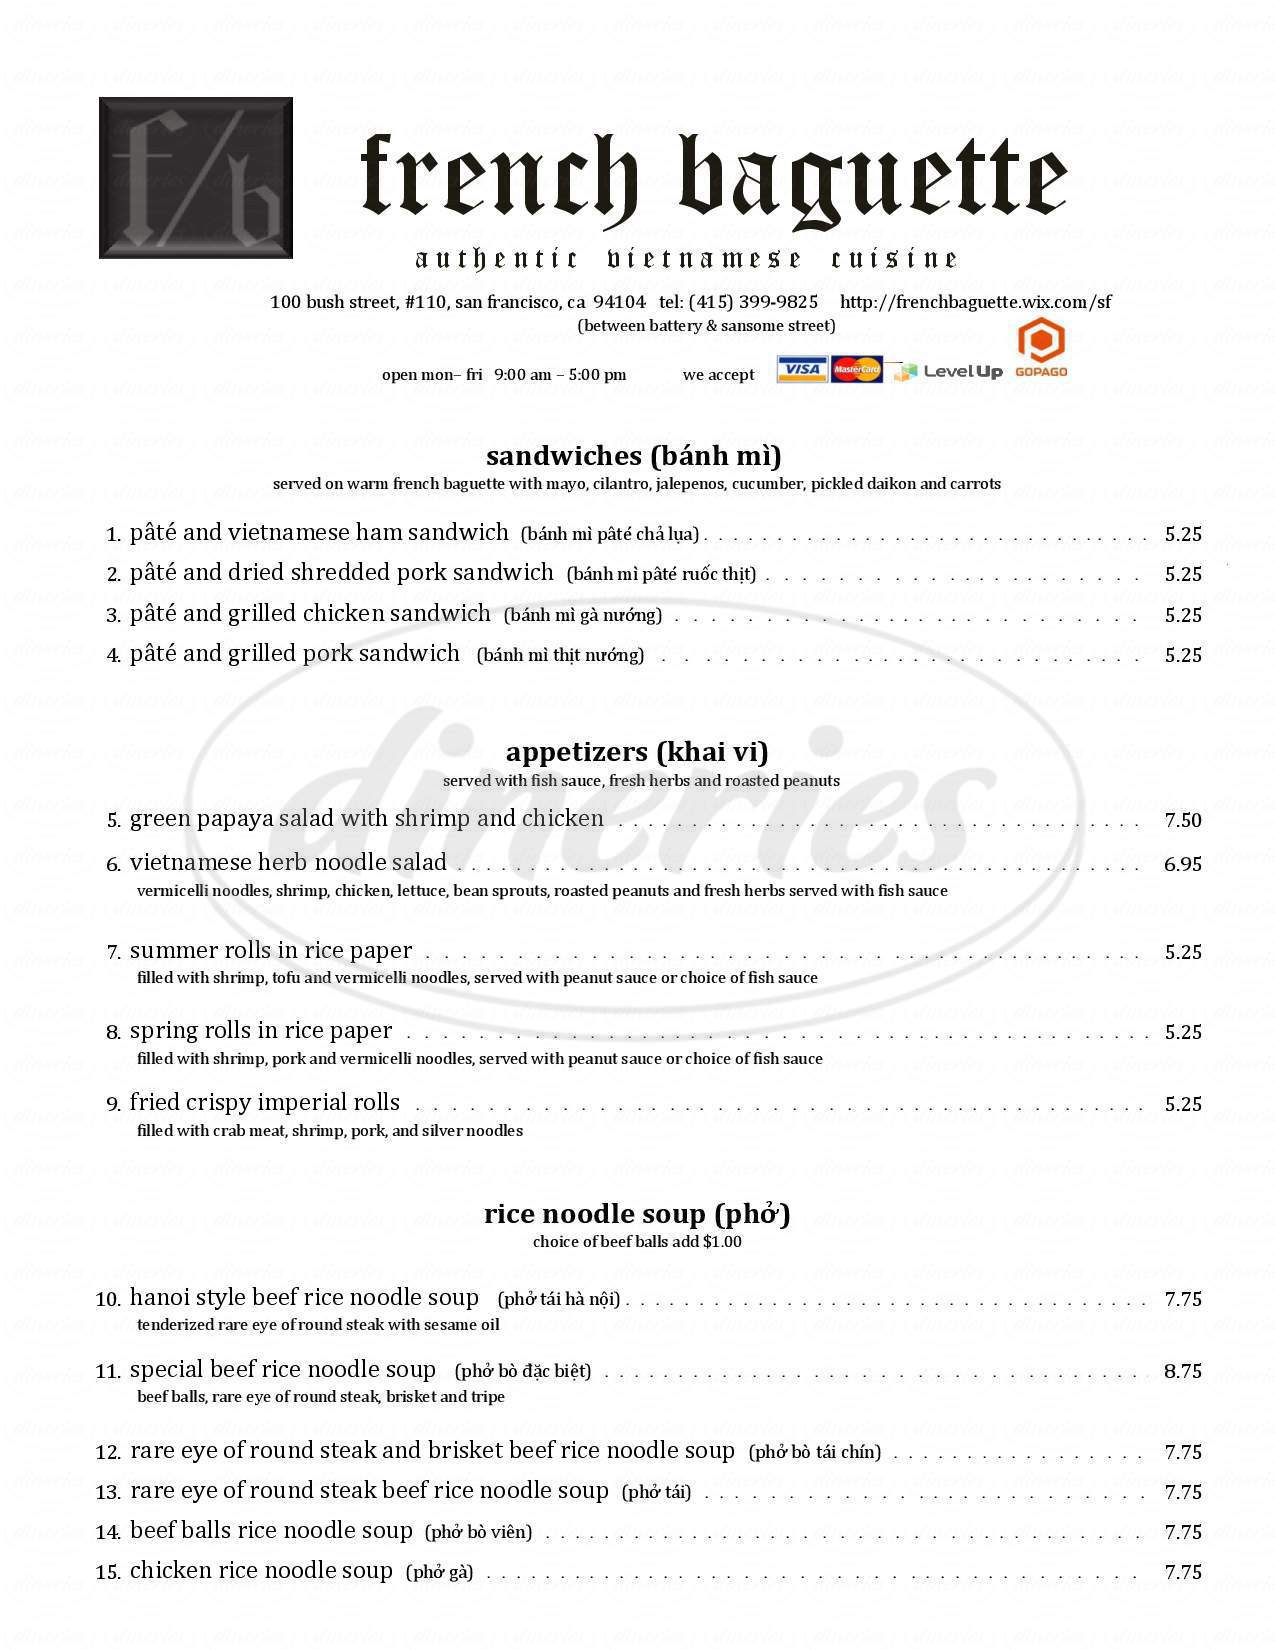 menu for French Baguette